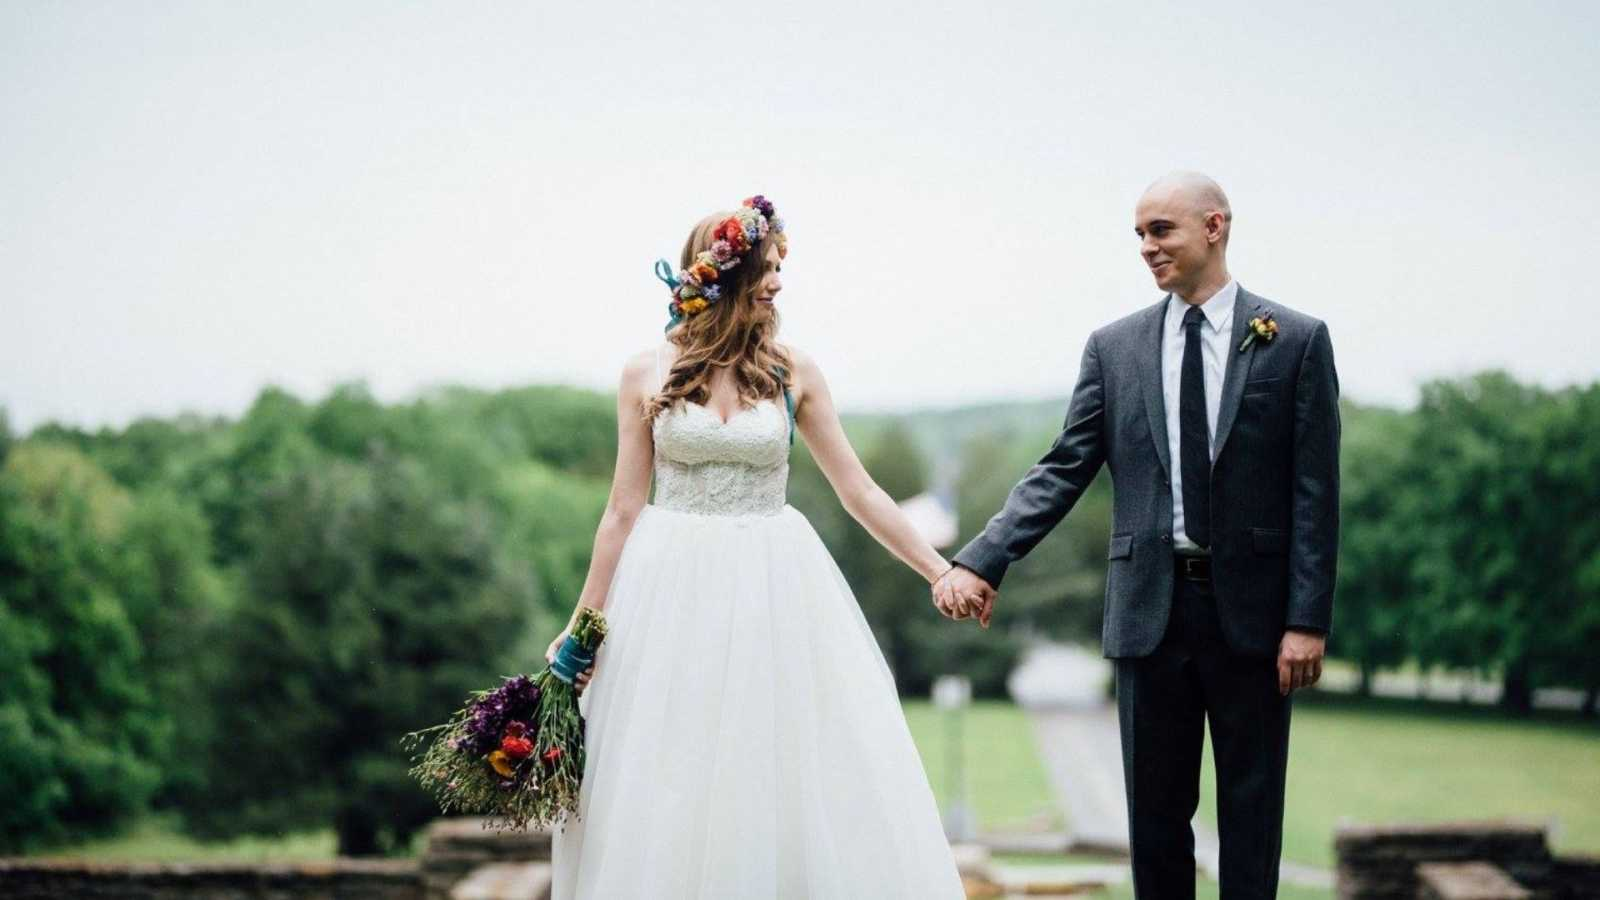 Couple hold hands and smile at each other during their wedding photoshoot